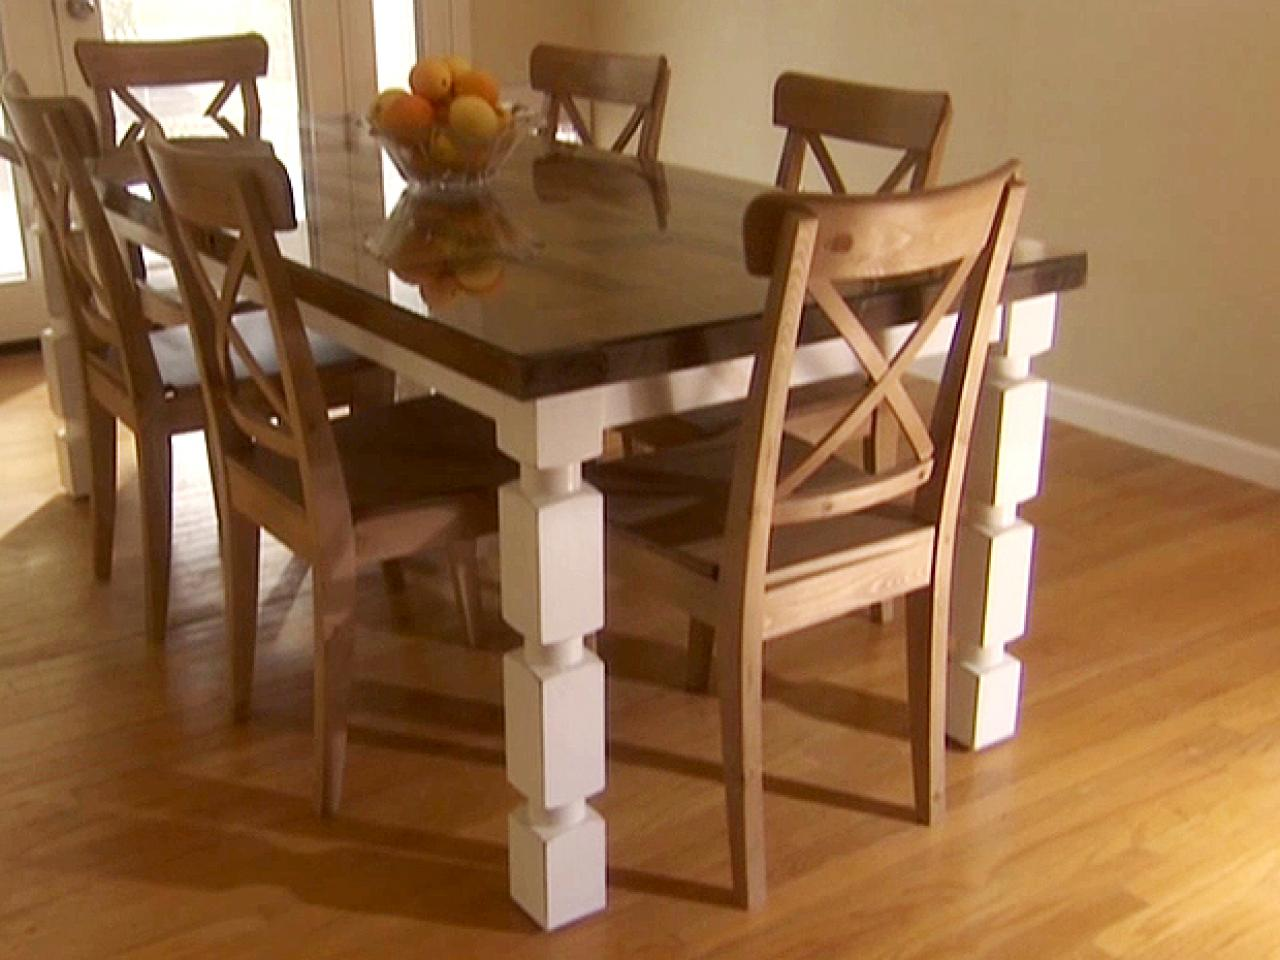 How to build a dining table from an old door and posts hgtv how to build a dining table from an old door and posts watchthetrailerfo